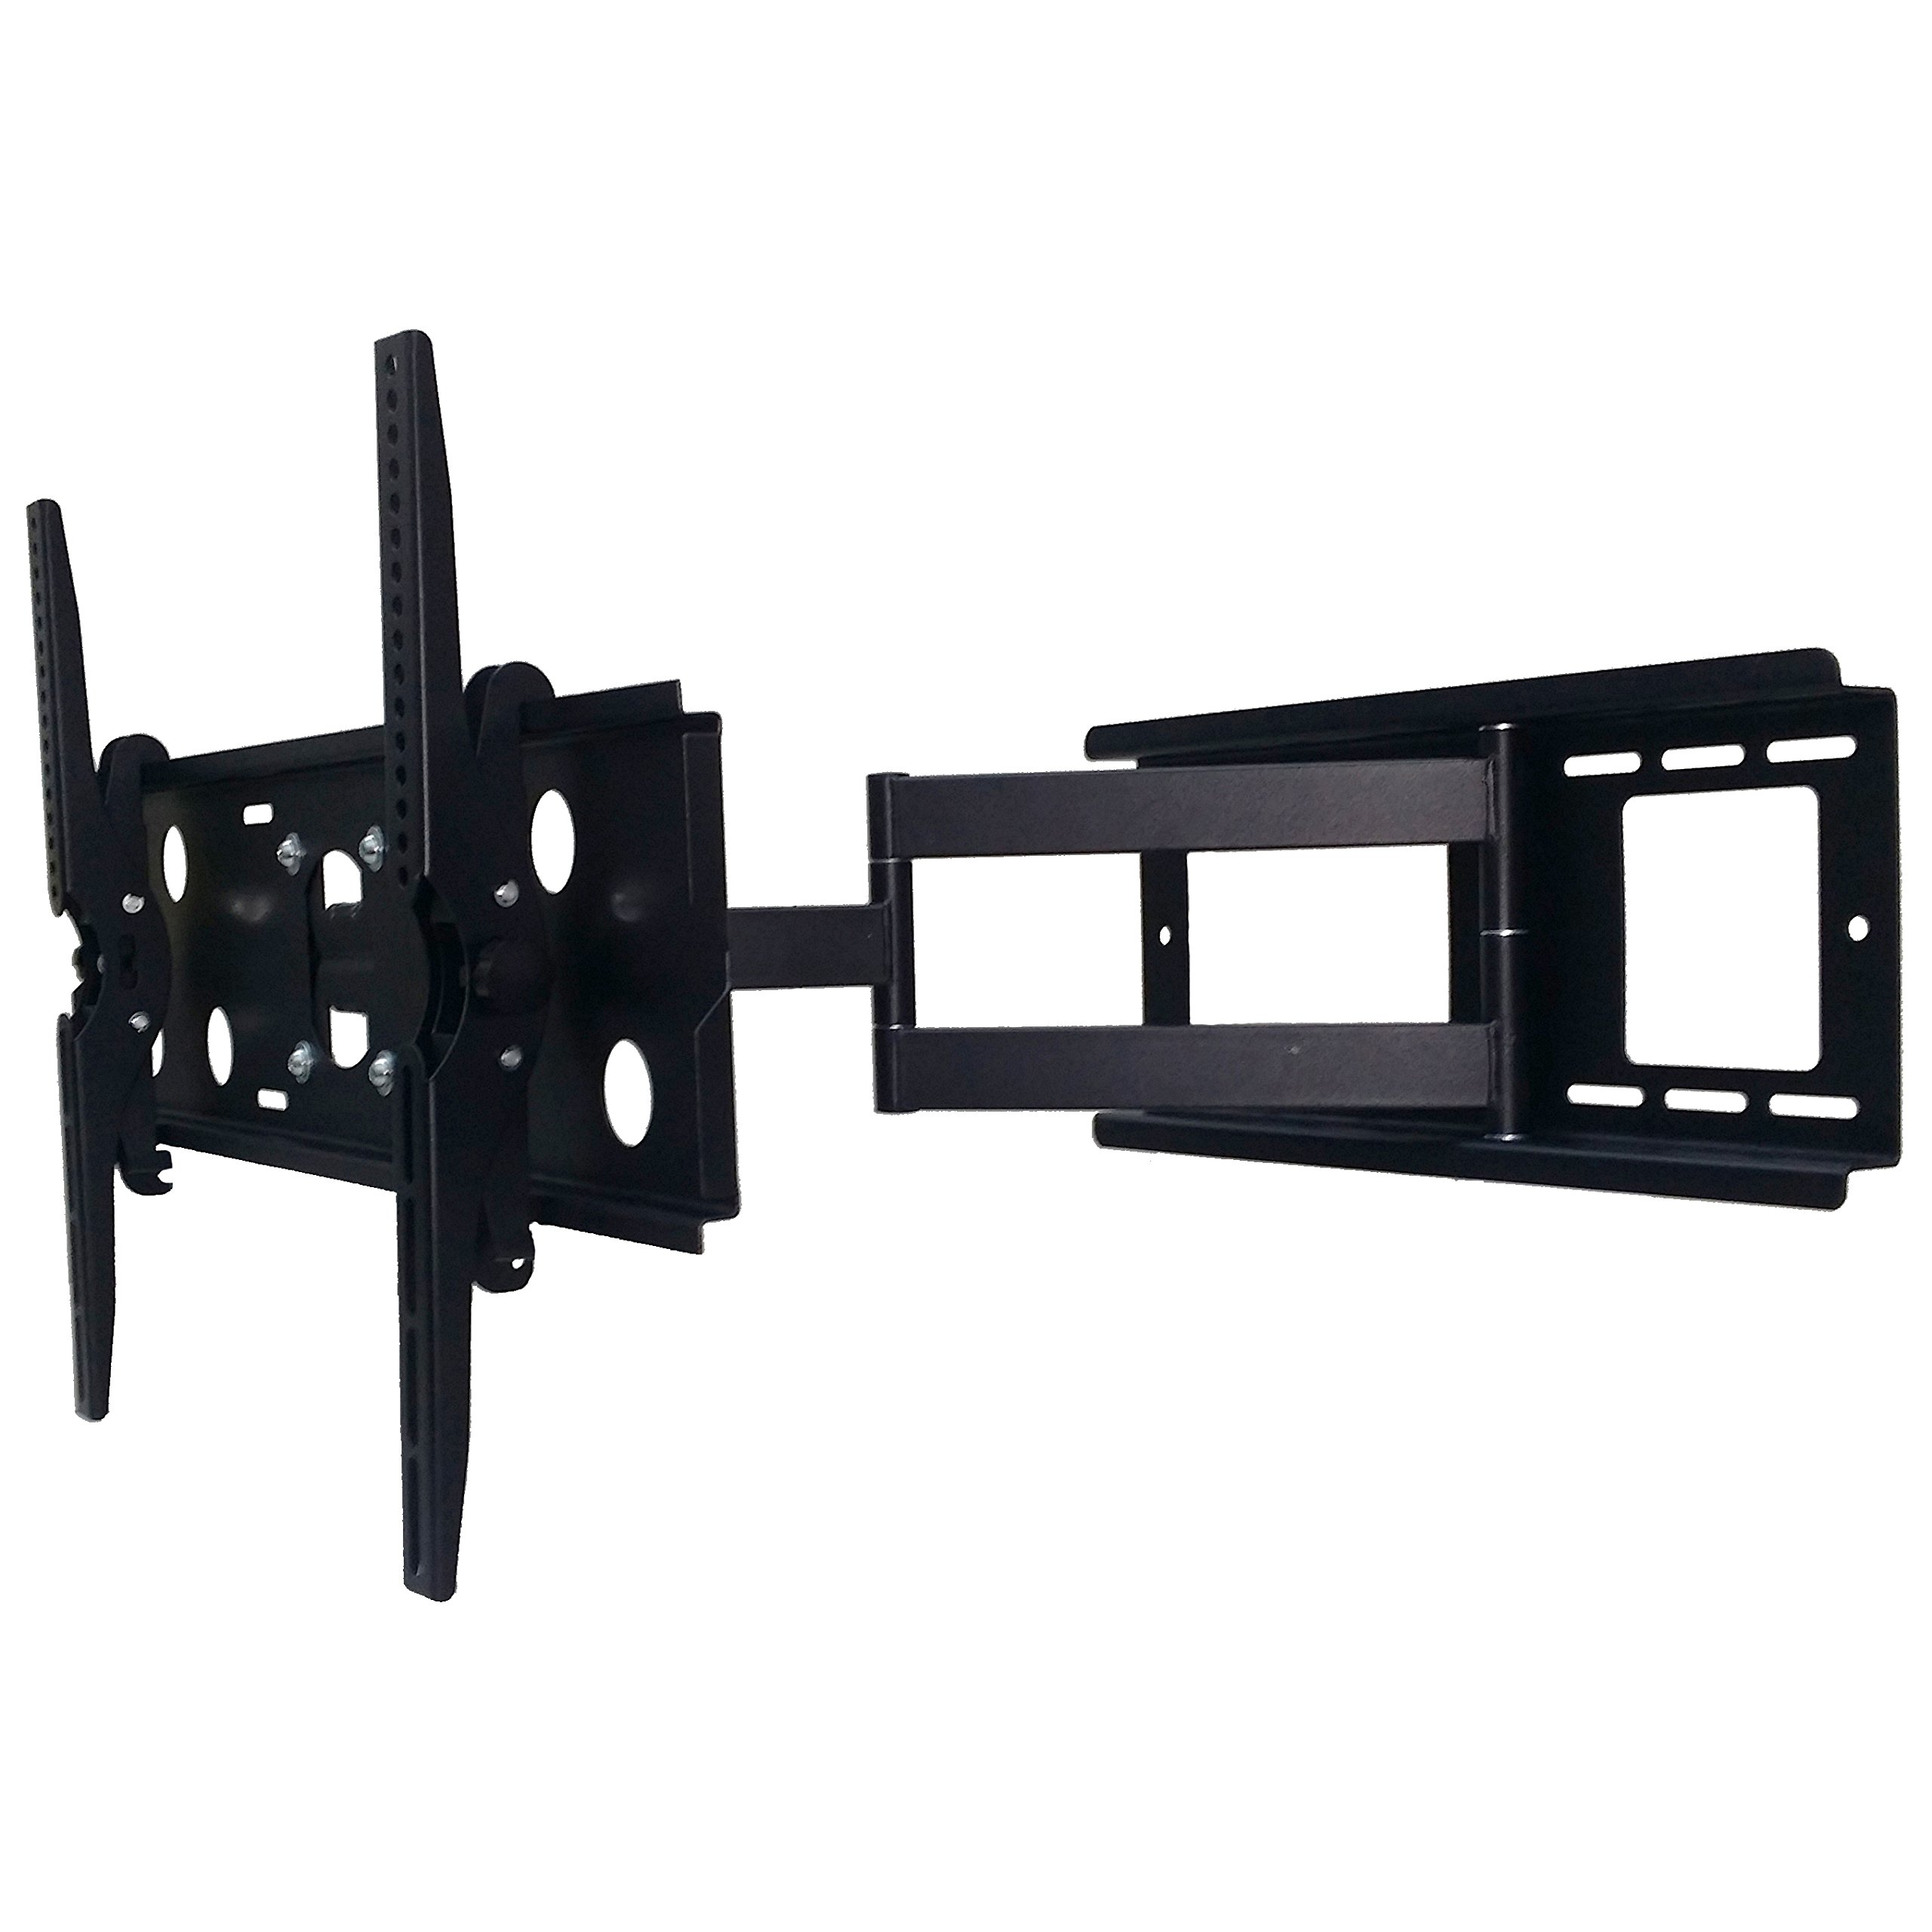 2xhome – NEW TV Wall Mount Bracket (Single Arm) Secure Cantilever LED LCD Plasma Smart 3D WiFi Flat Panel Screen Monitor Moniter Display Large Displays - Long Swing Out Single Arm Extending Extendible Adjusting Adjustable - Full Motion 15 degree degrees